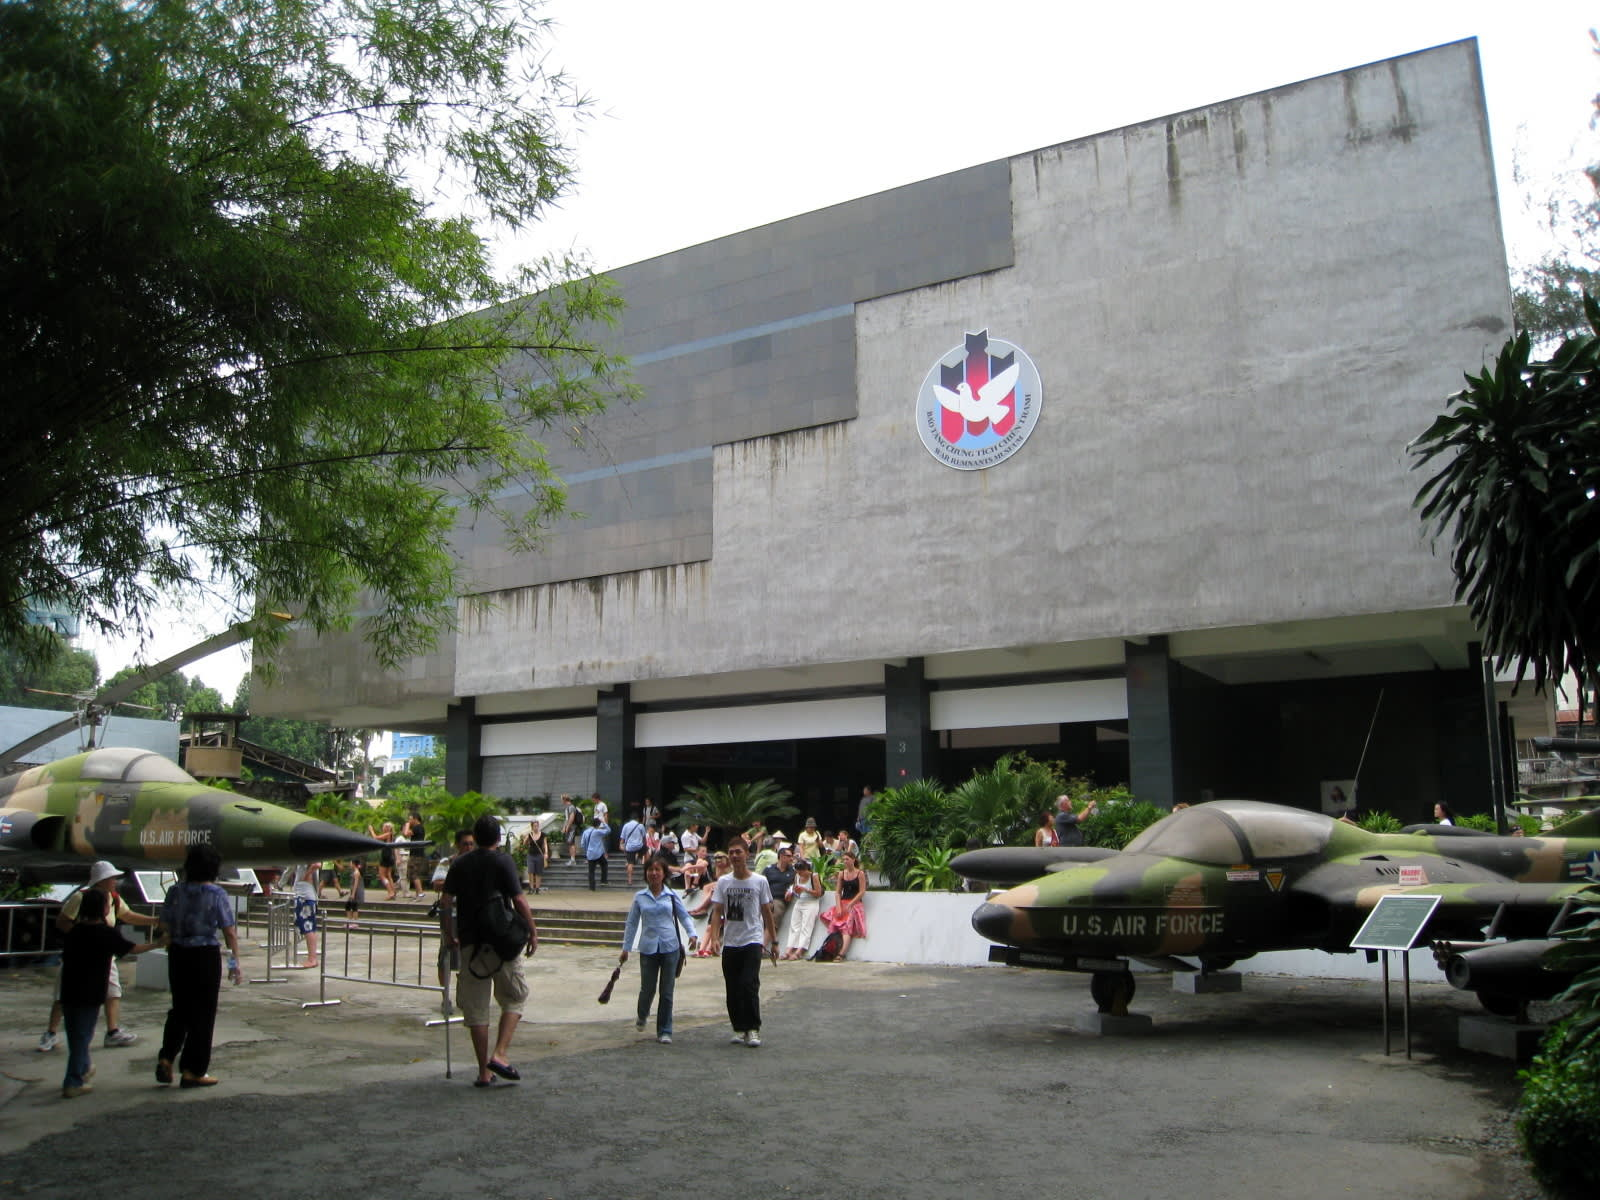 戰爭遺跡博物館 https://commons.wikimedia.org/wiki/File:War_Remnants_Museum_Main_Bulidng.jpg